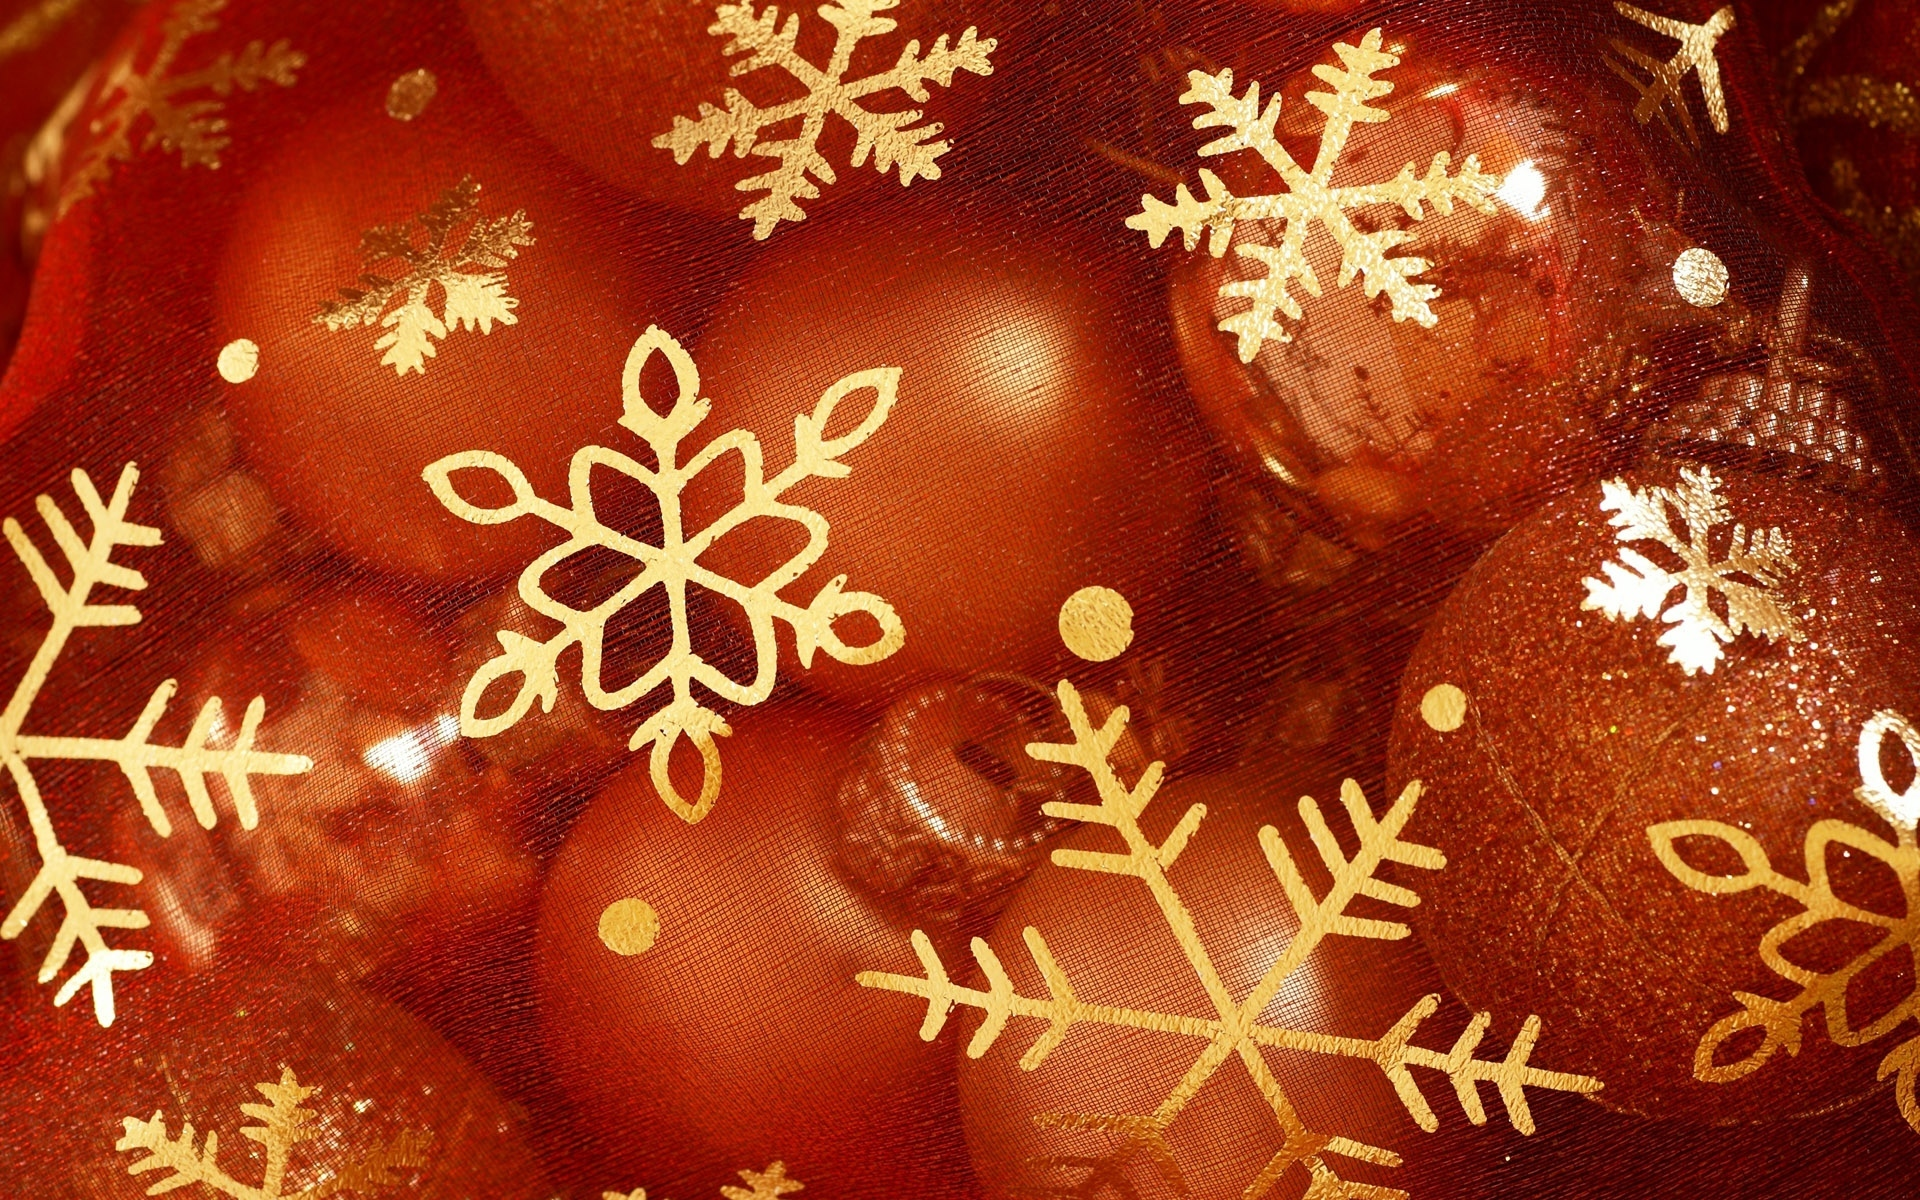 Year Desktop Wallpaper on Category Christmas New Year This Free Desktop Wallpaper Has Been